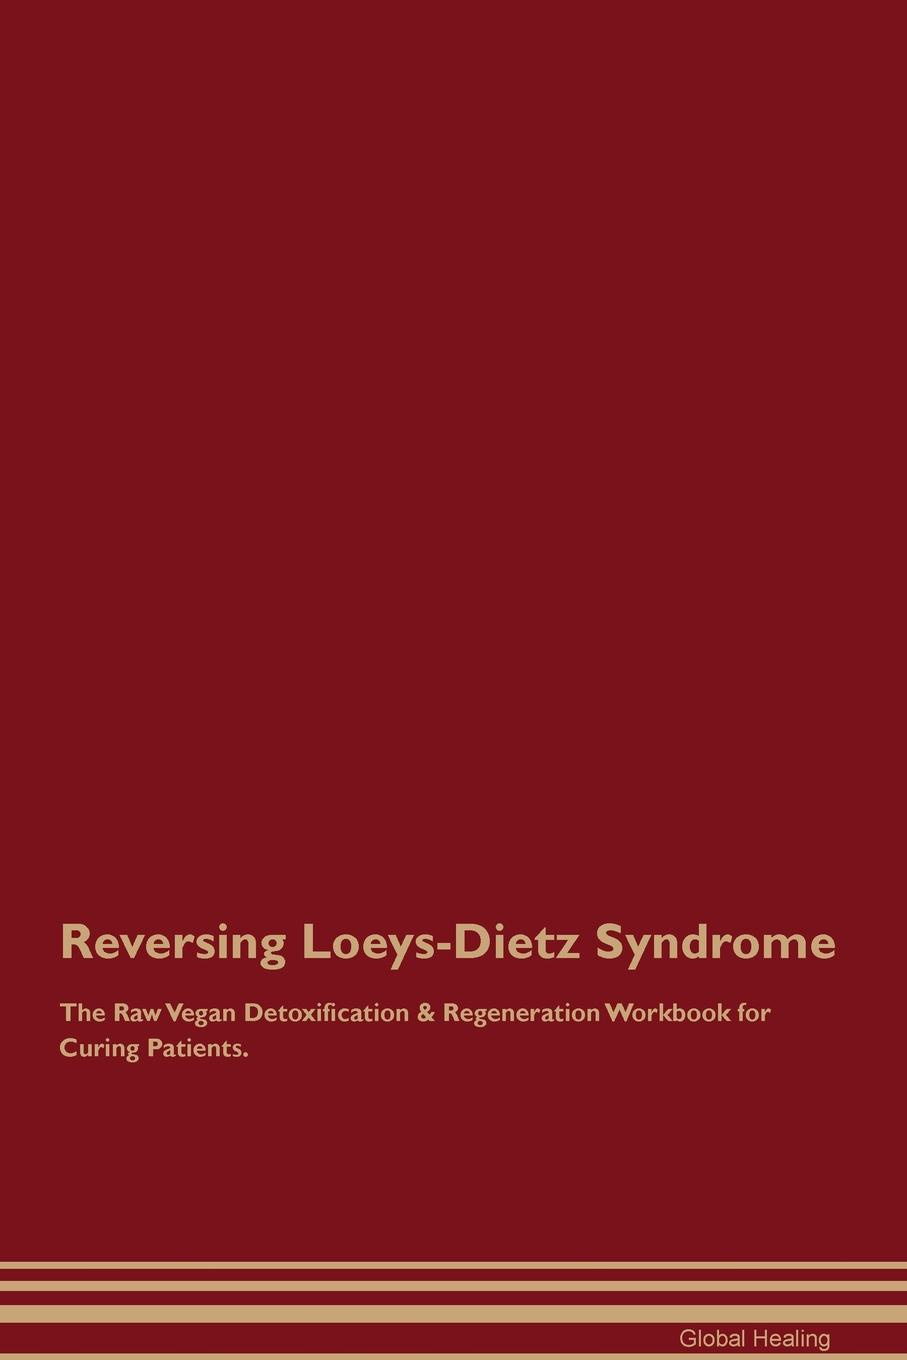 Global Healing Reversing Loeys-Dietz Syndrome The Raw Vegan Detoxification . Regeneration Workbook for Curing Patients prevalance of metabolic syndrome in baghdad